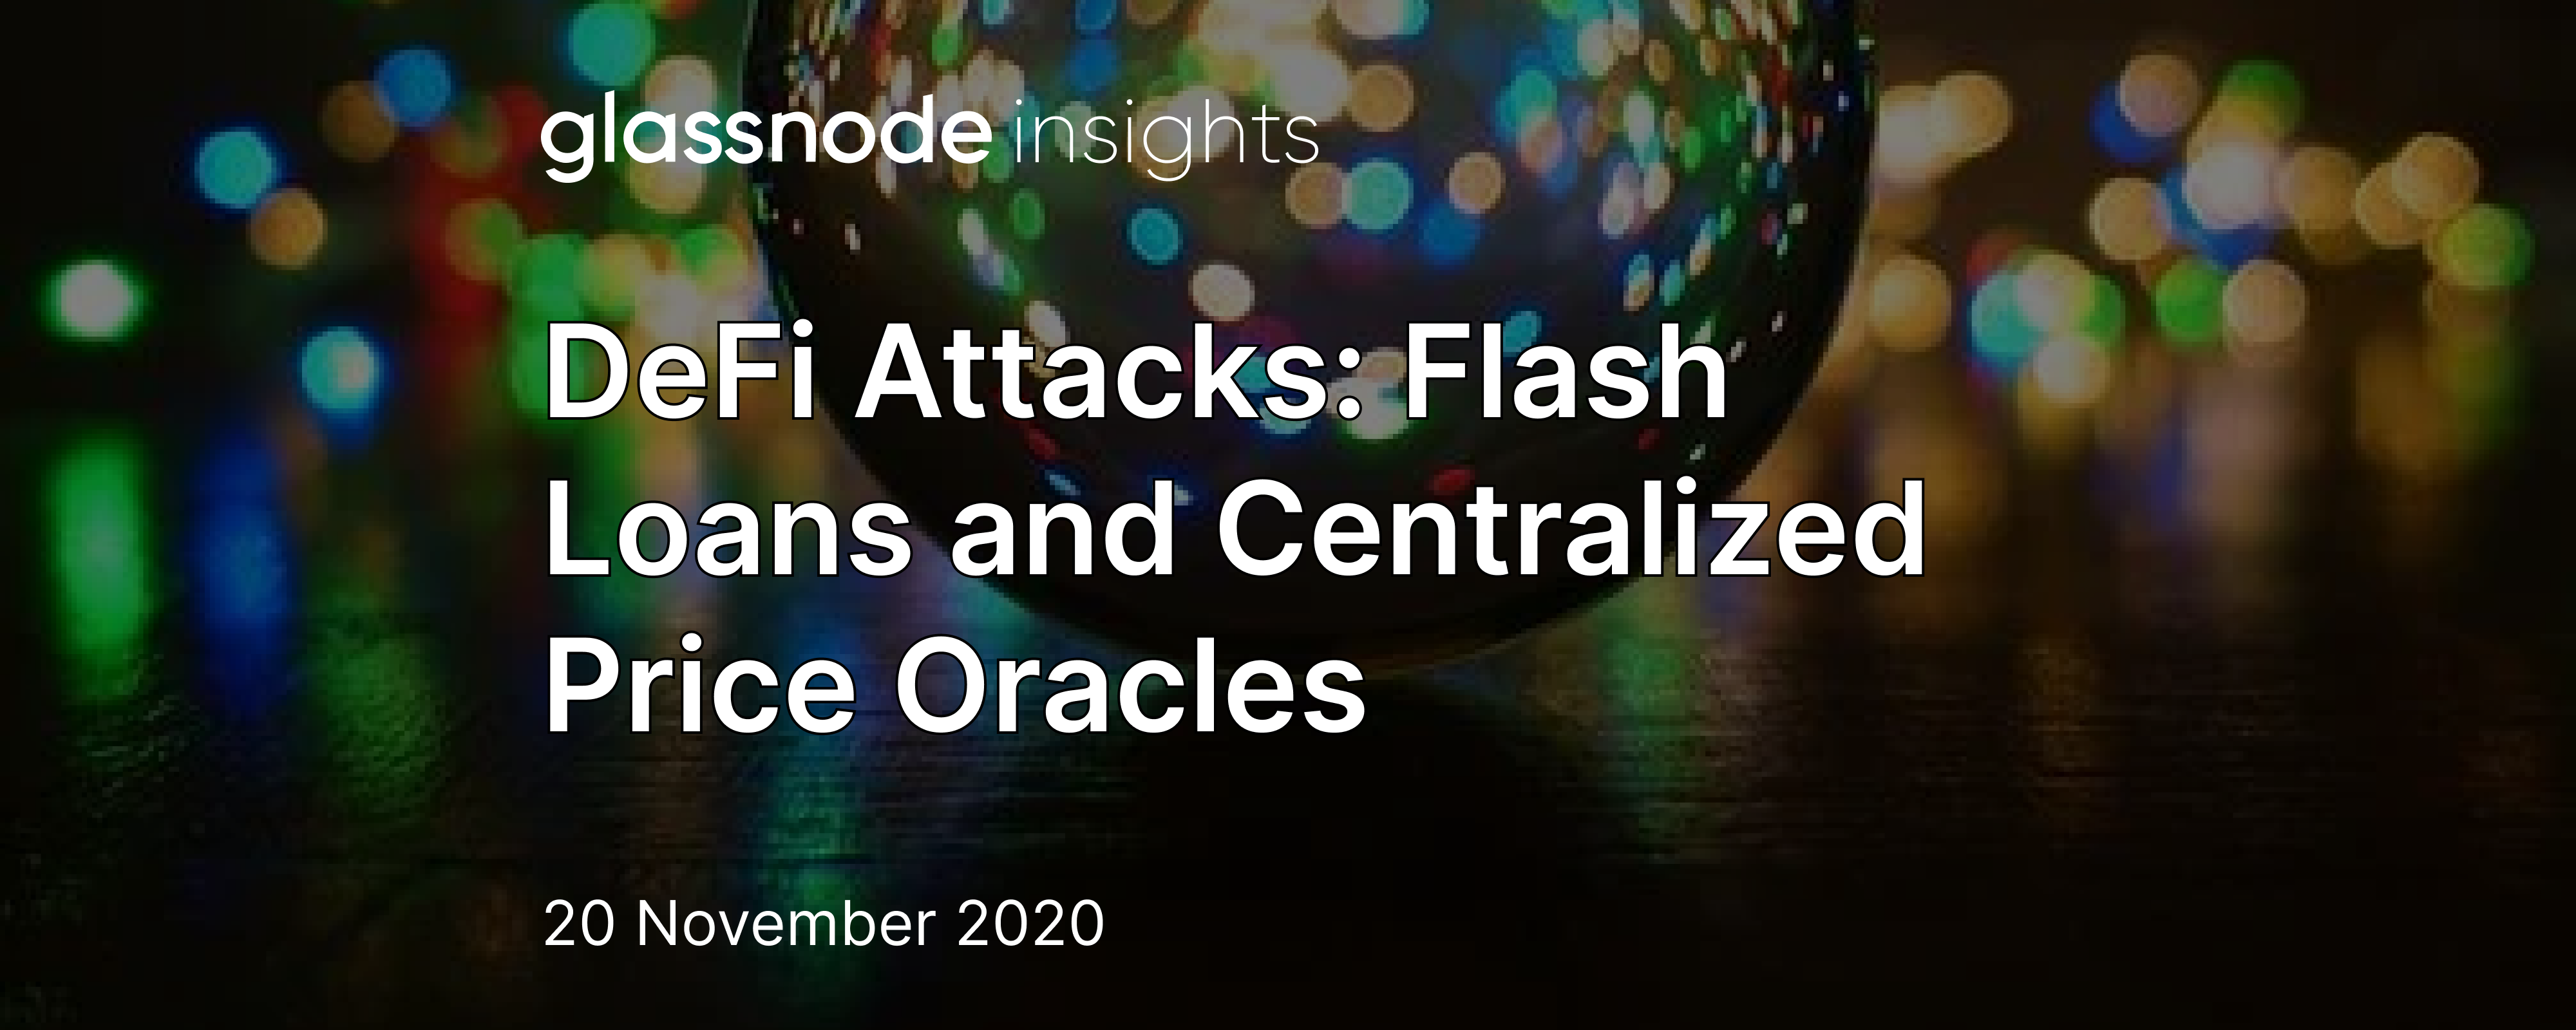 DeFi Attacks: Flash Loans and Centralized Price Oracles